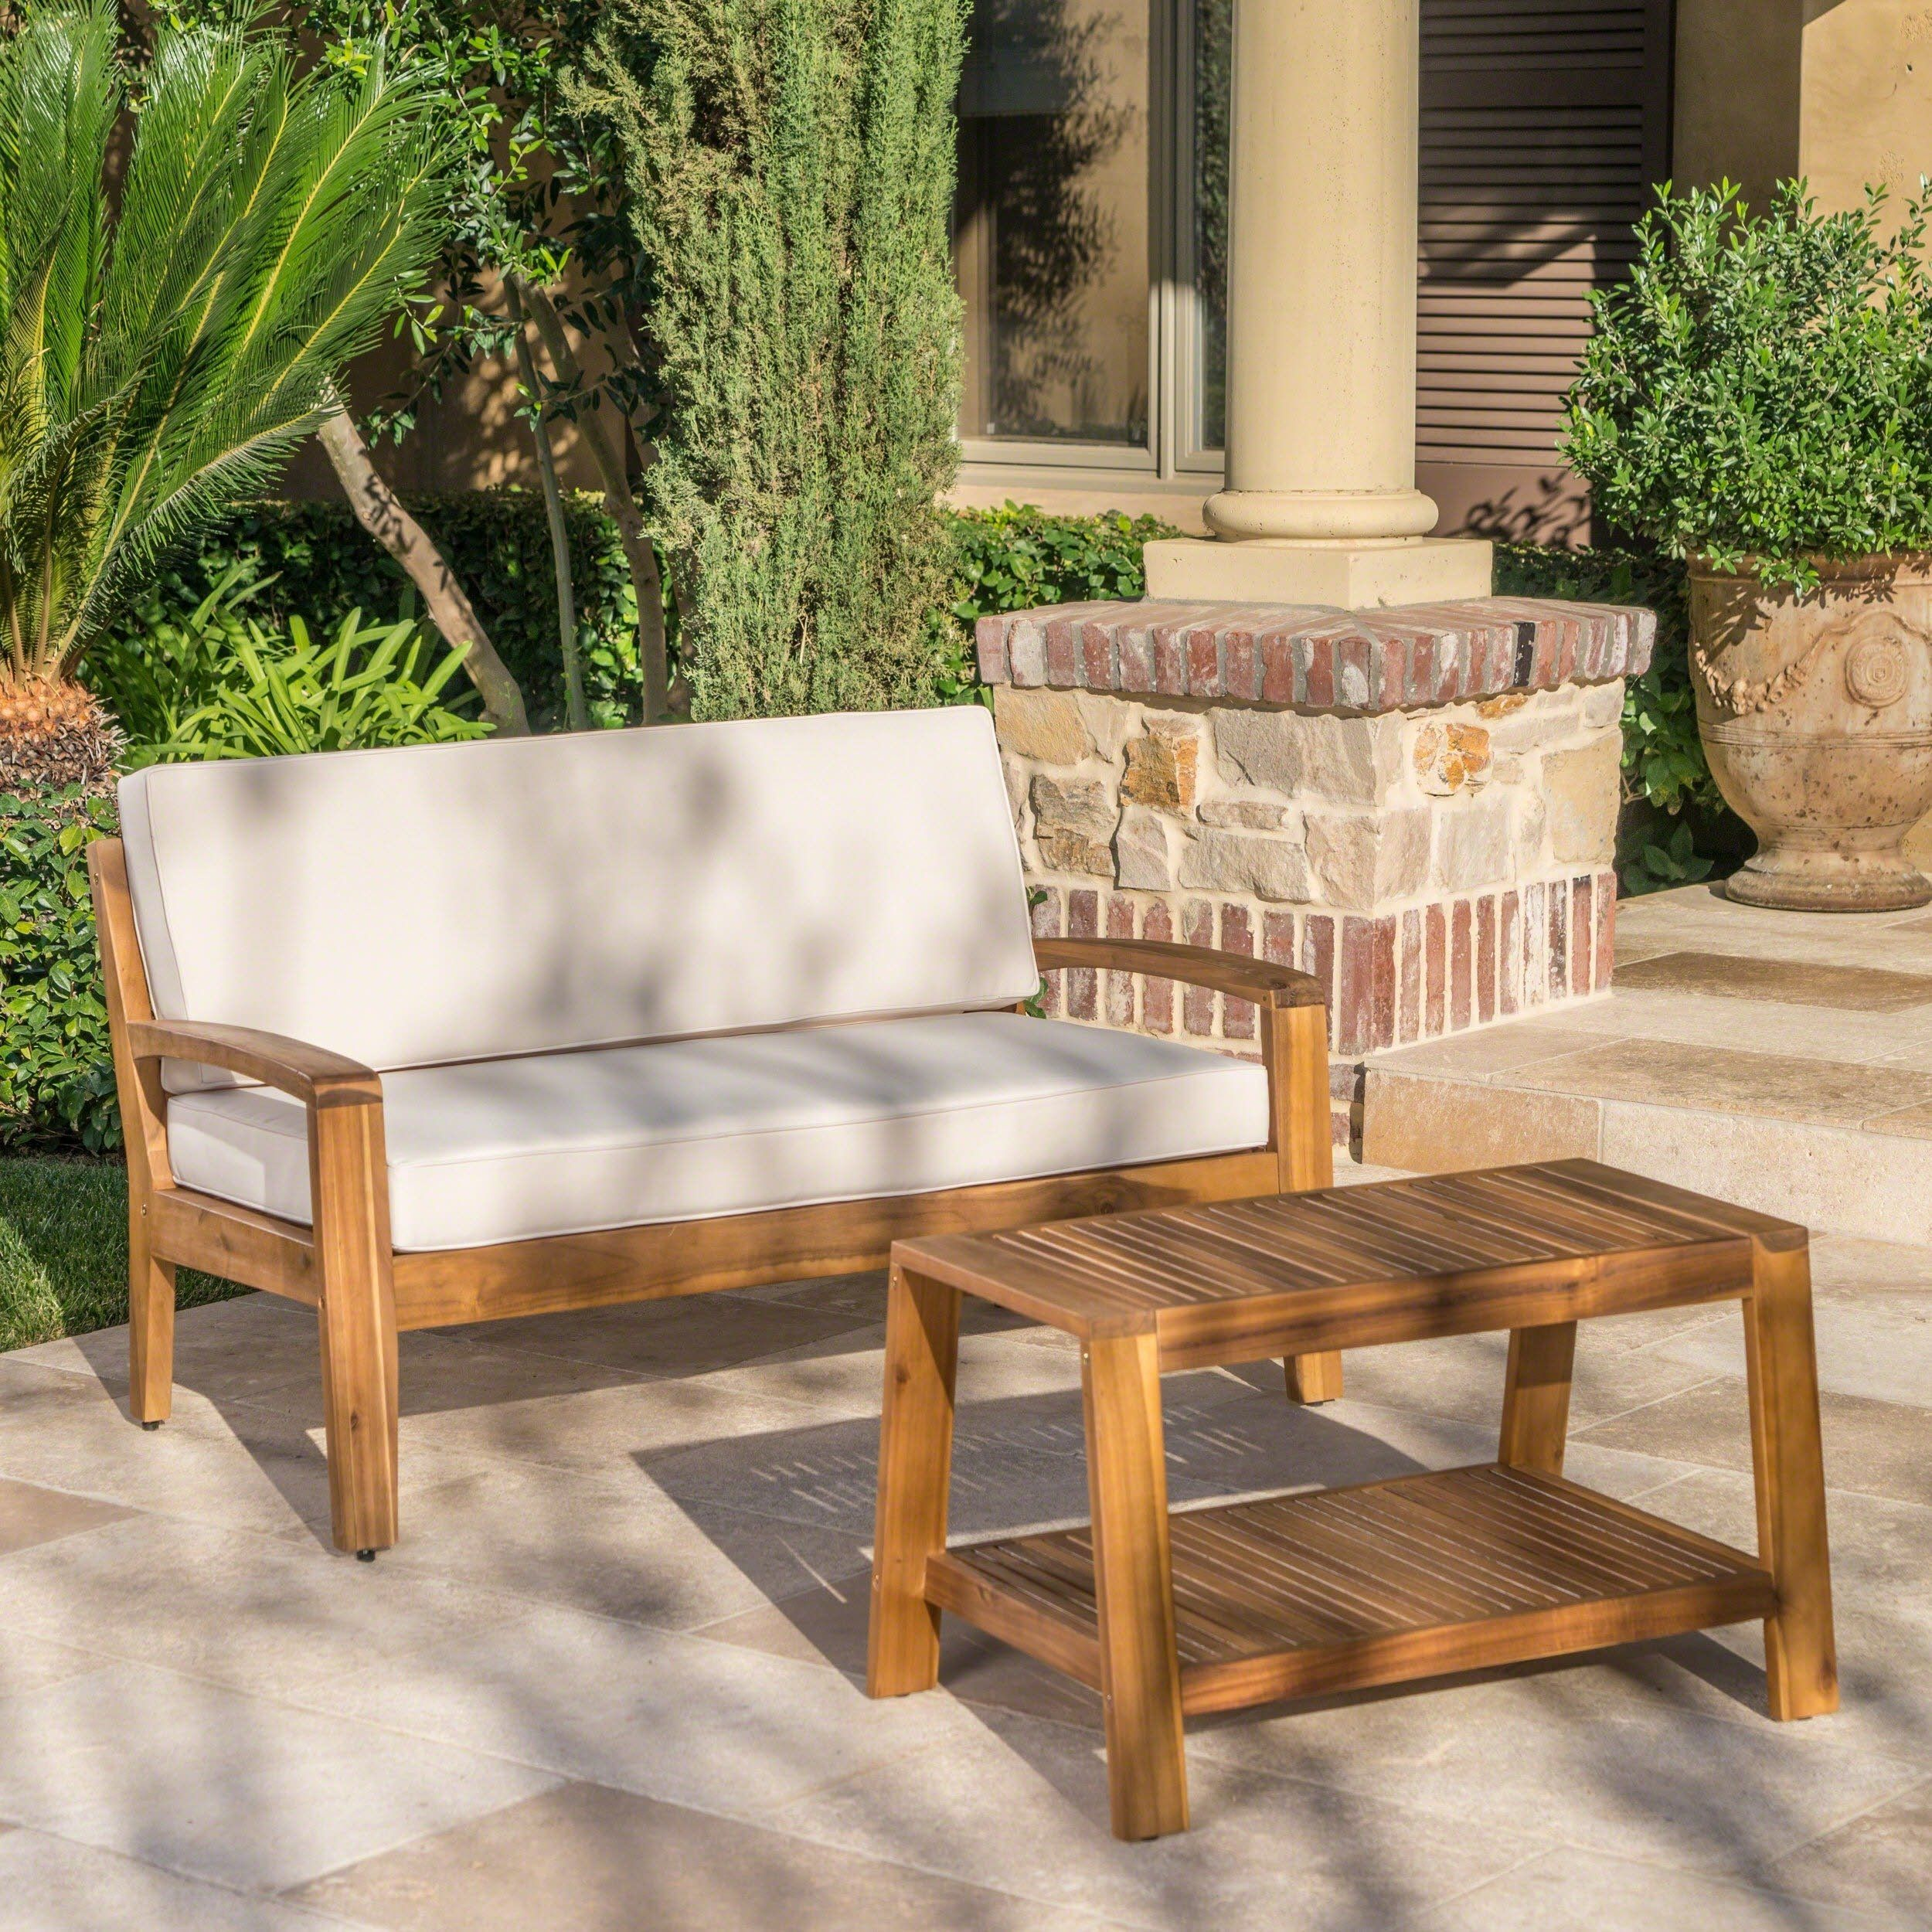 Grenada outdoor 2piece acacia wood loveseat and coffee